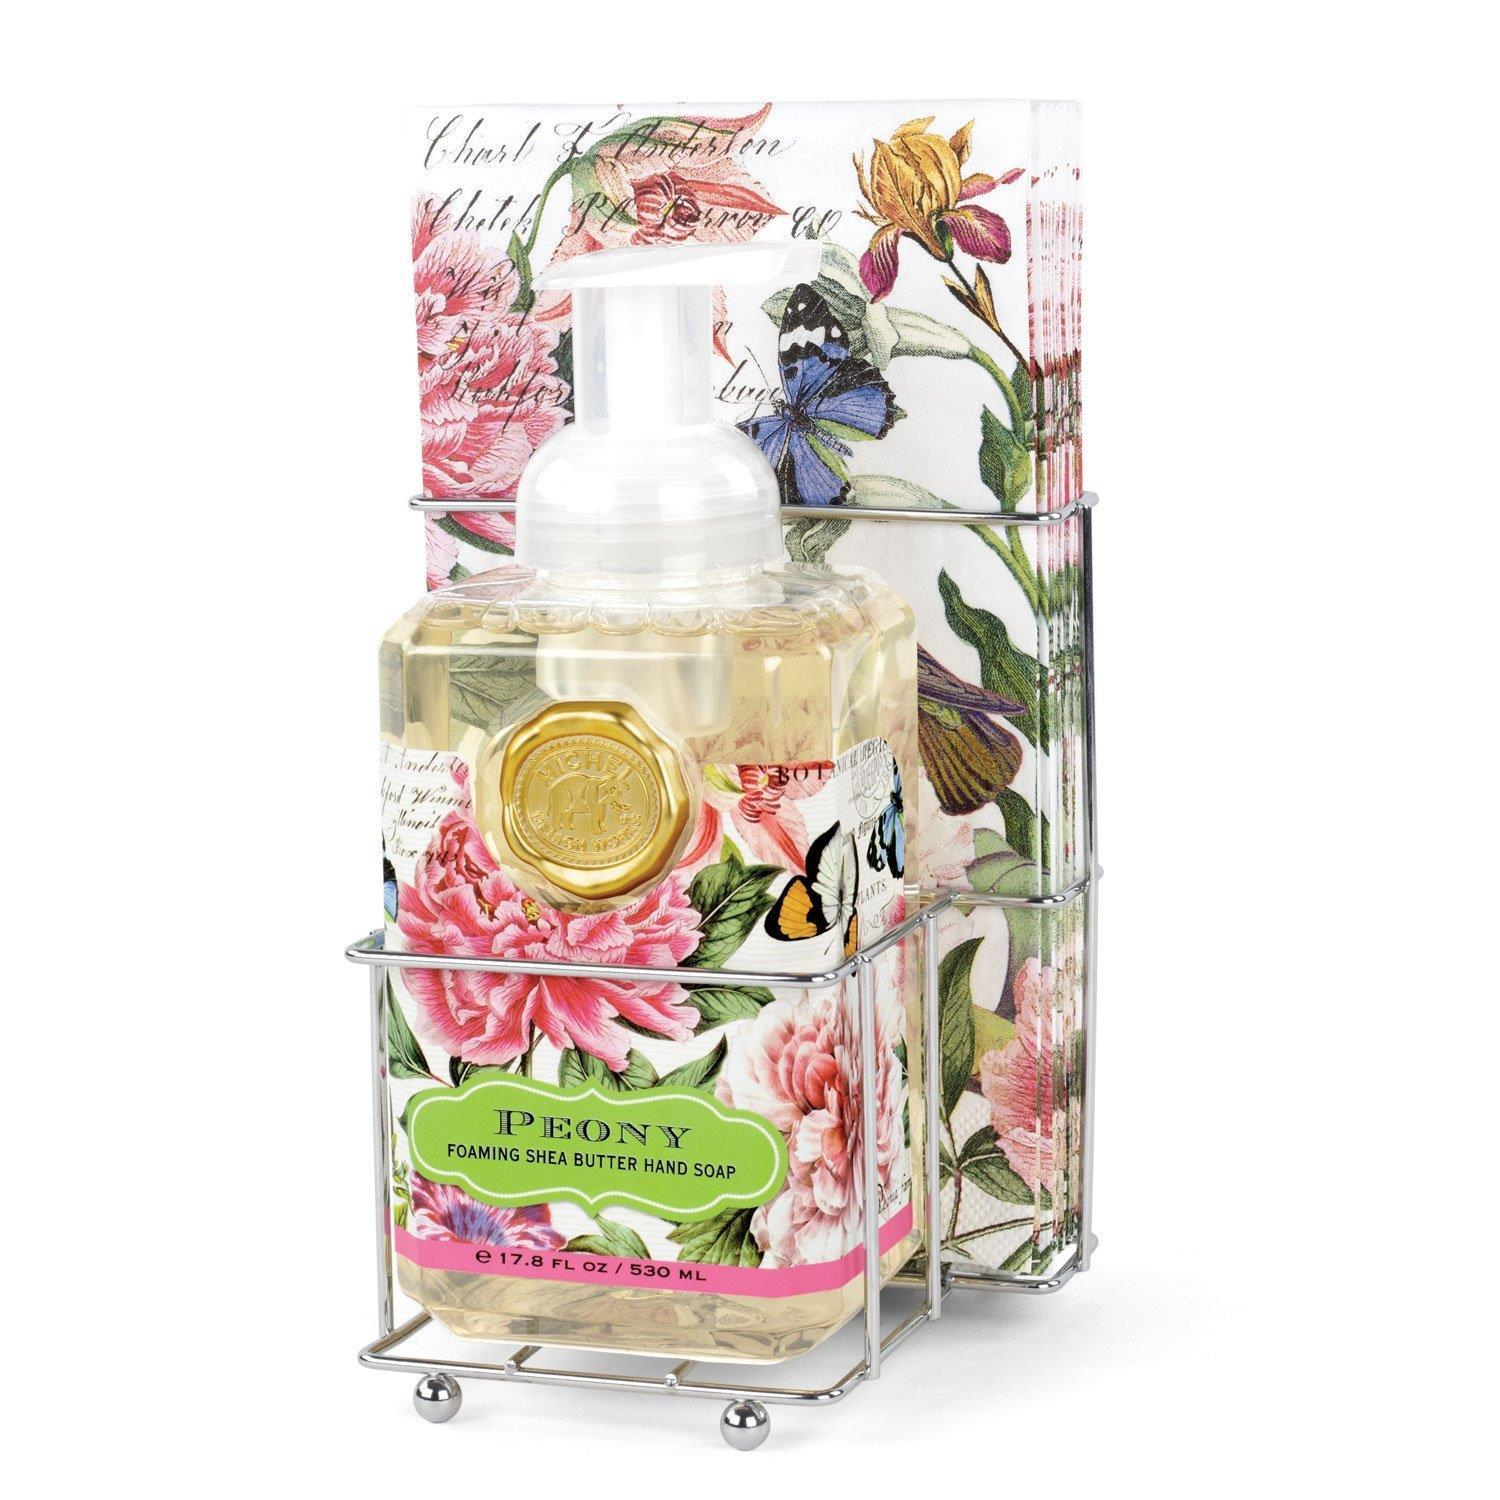 Peony Foaming Hand Soap Napkin Set - Boutique Marie Dumas